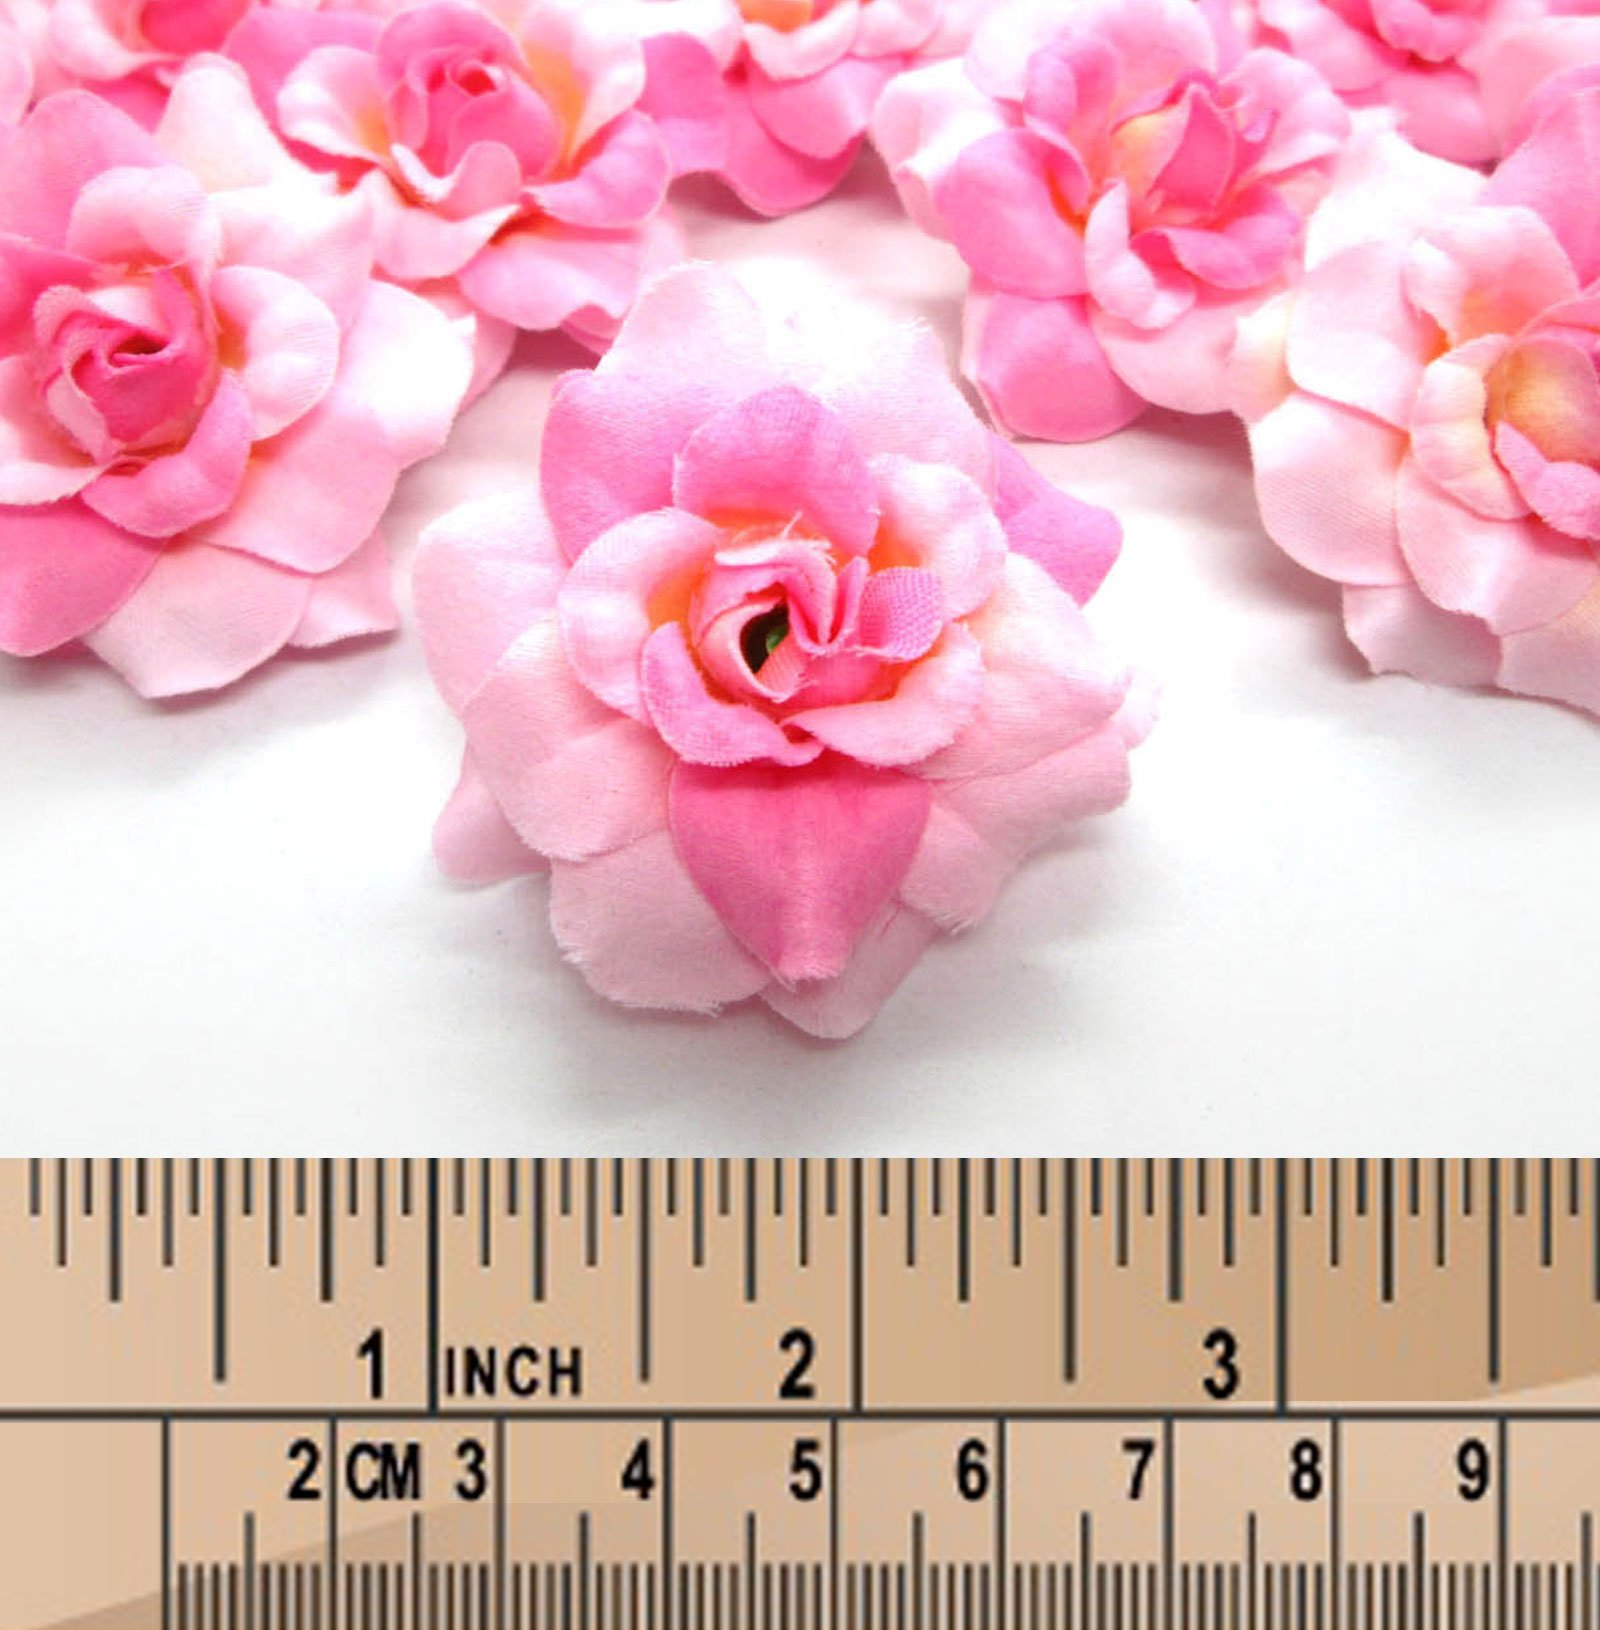 100-Silk-Two-Tone-Light-Pink-Roses-Flower-Head-175-Artificial-Flowers-Heads-Fabric-Floral-Supplies-Wholesale-Lot-for-Wedding-Flowers-Accessories-Make-Bridal-Hair-Clips-Headbands-Dress